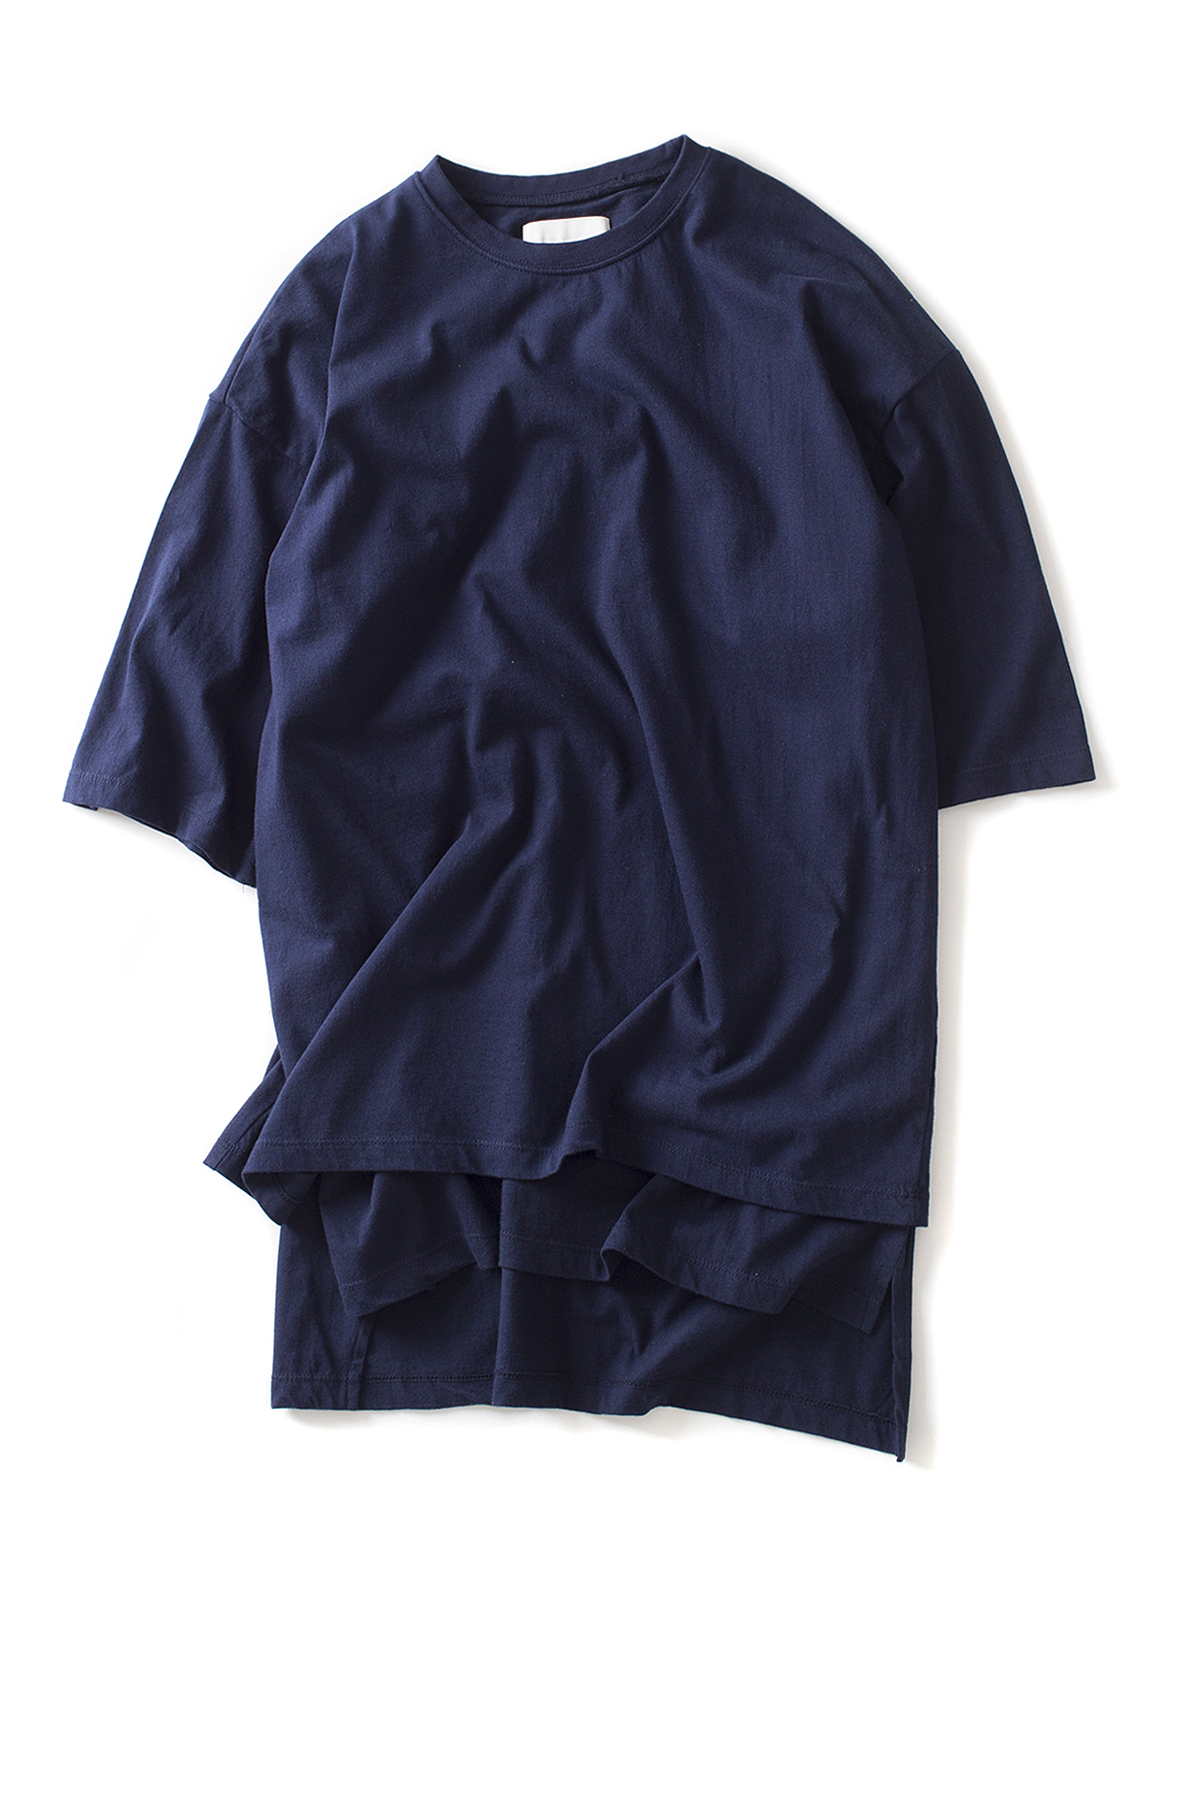 GAKURO : Layered Oversized S/S T-Shirt (Navy)